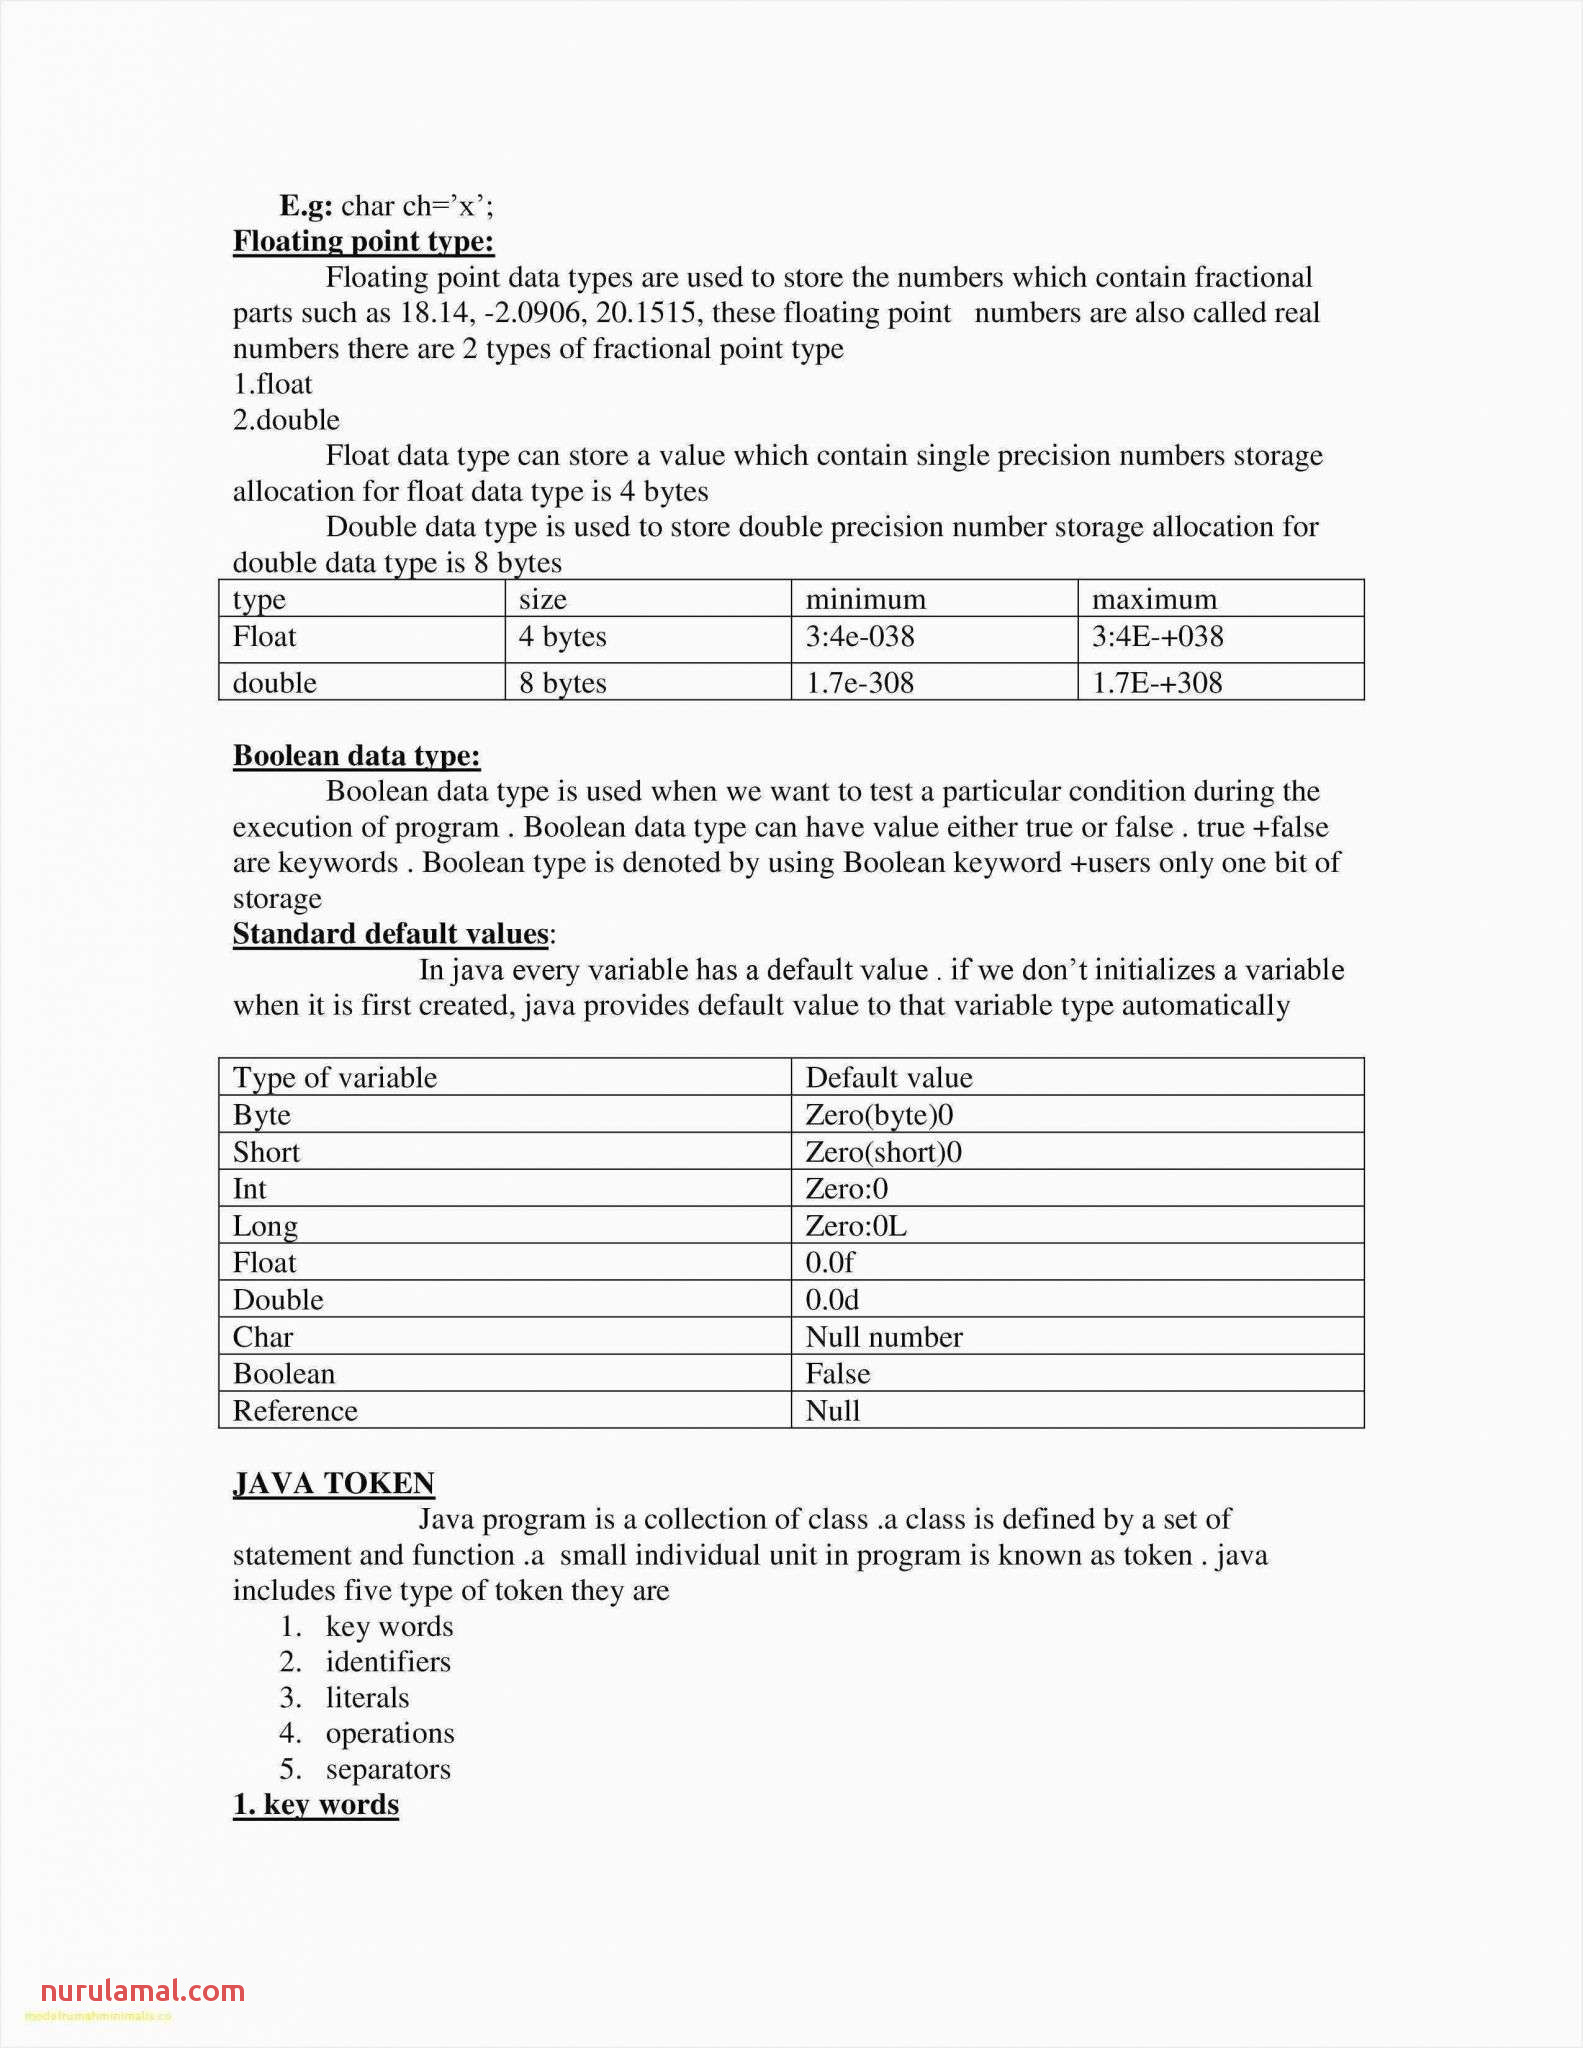 sketch the graph of each line worksheet answers luxury charts and graphs worksheets briefencounters worksheet template of sketch the graph of each line worksheet answers